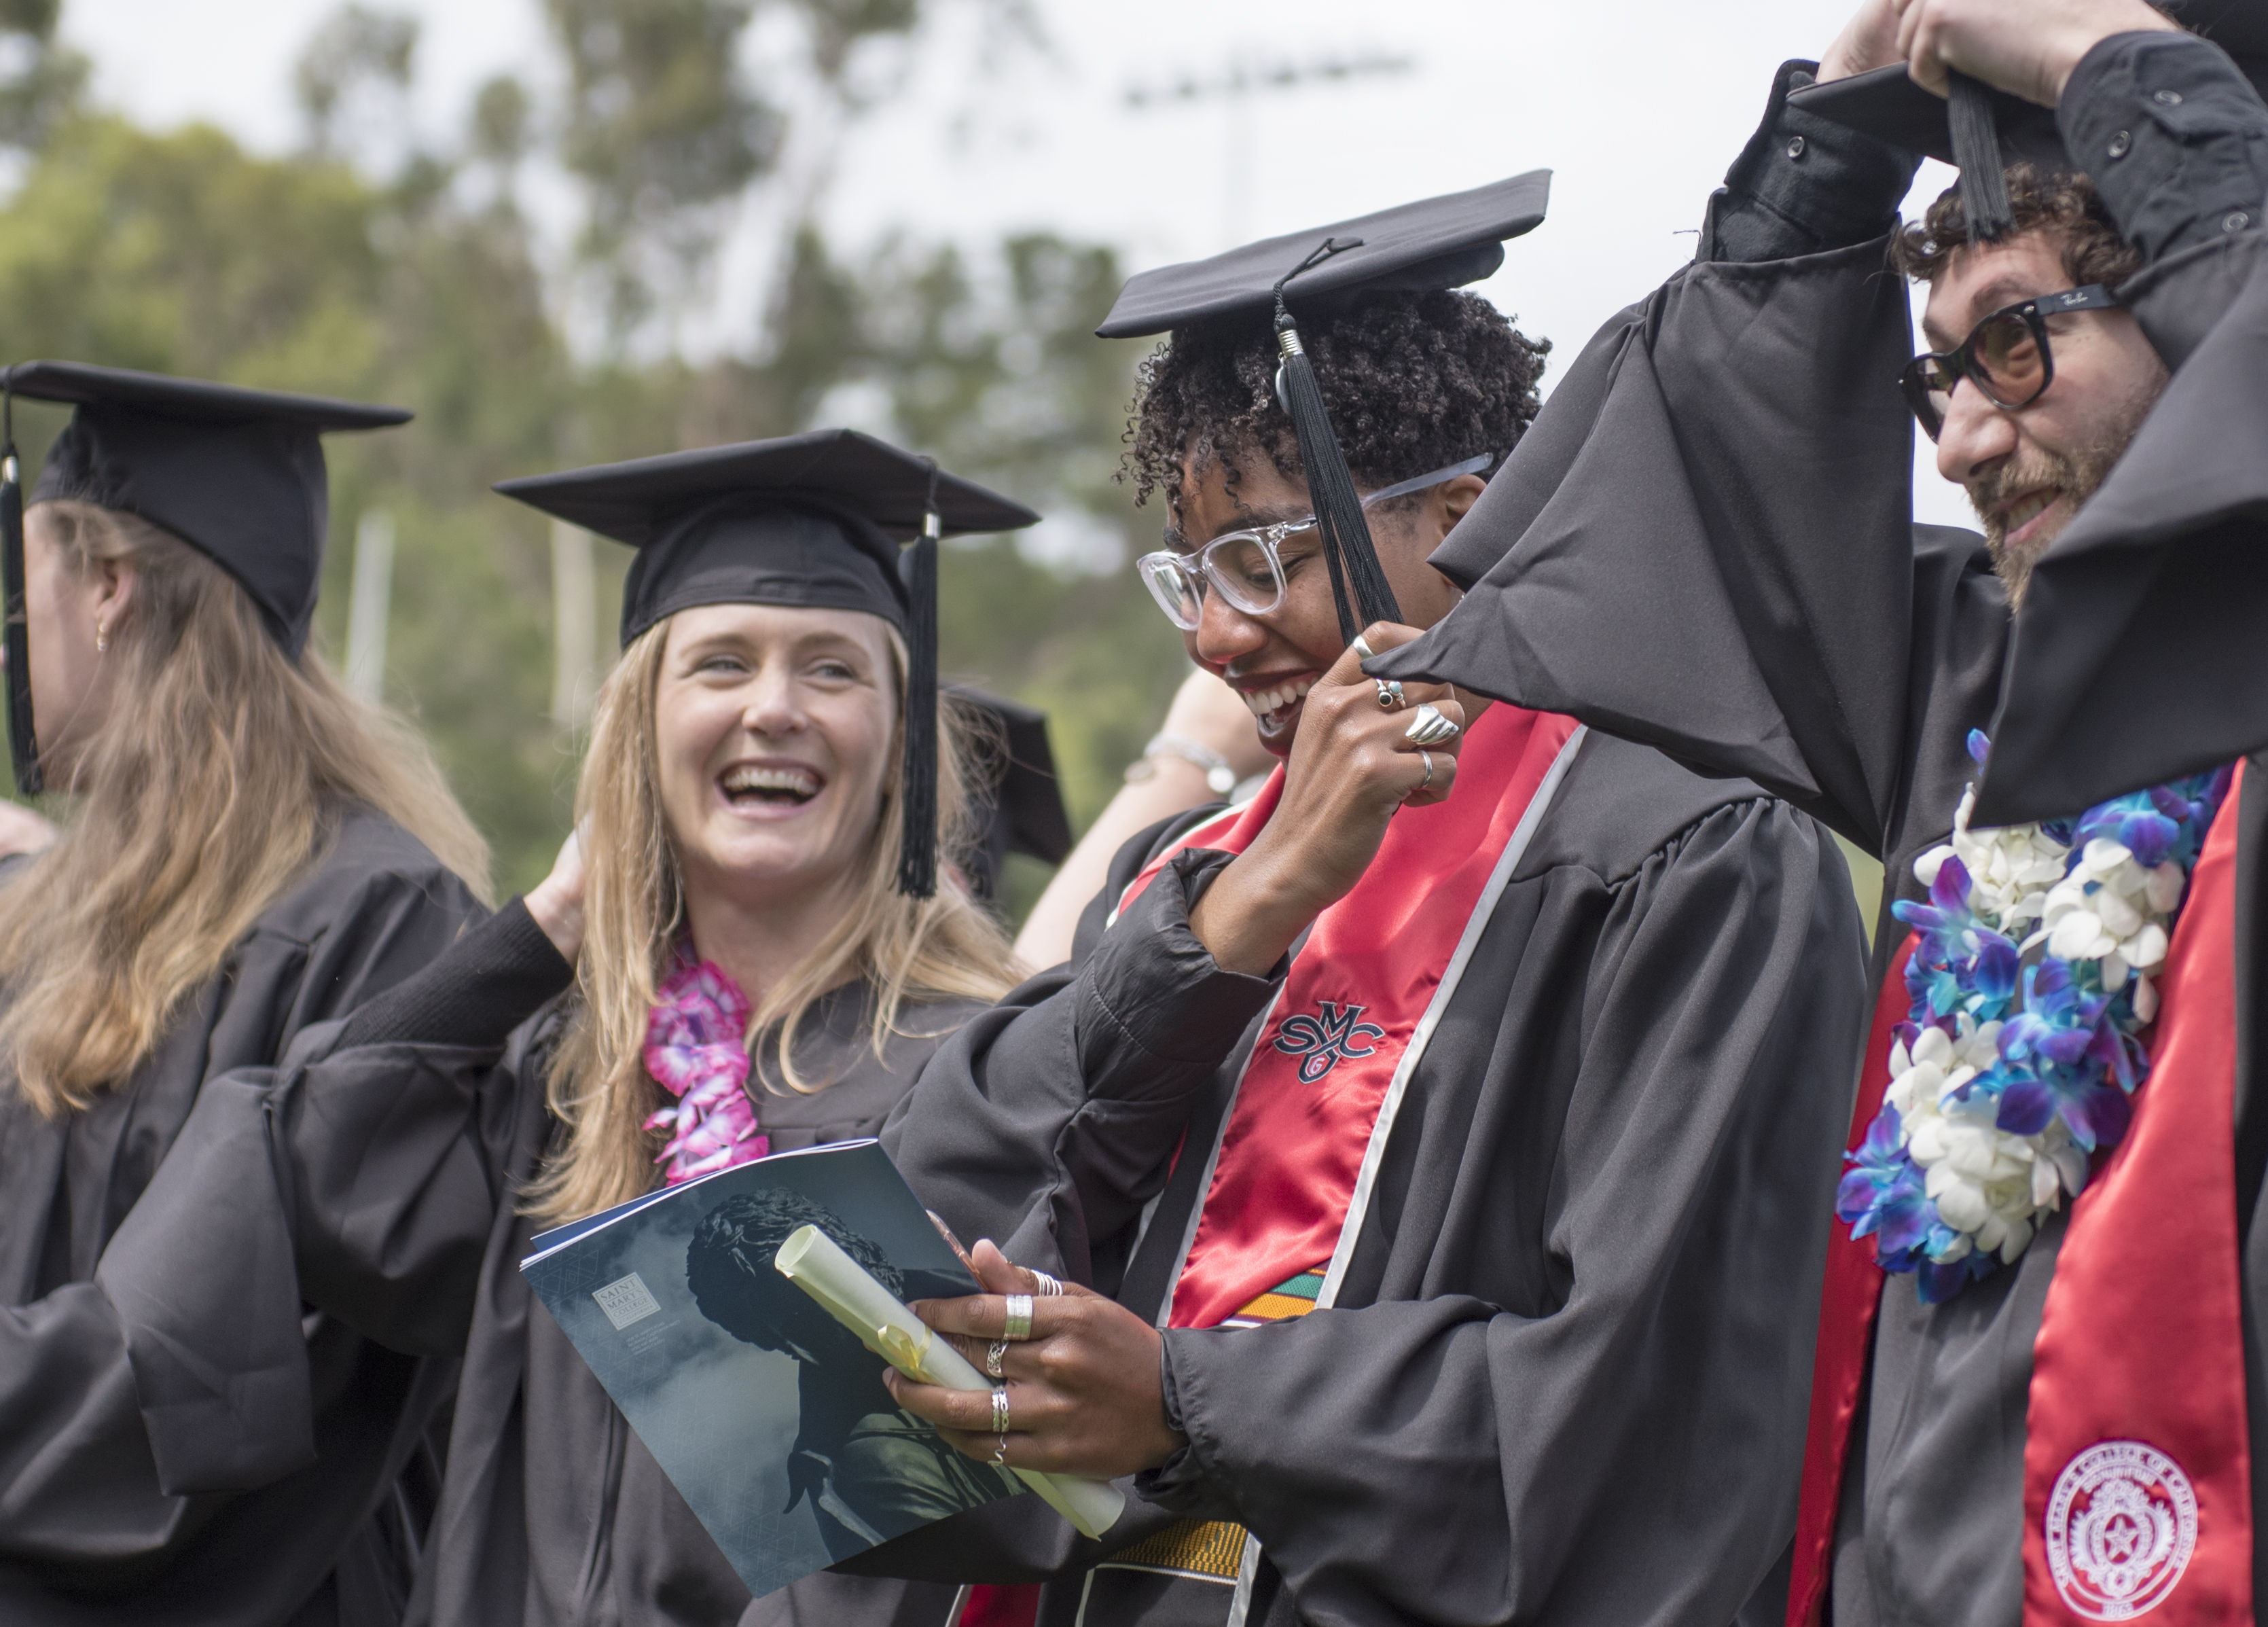 Candidates for diplomas at the 2019 Graduate and Professional Studies Commencement celebrate their achievements with laughter.